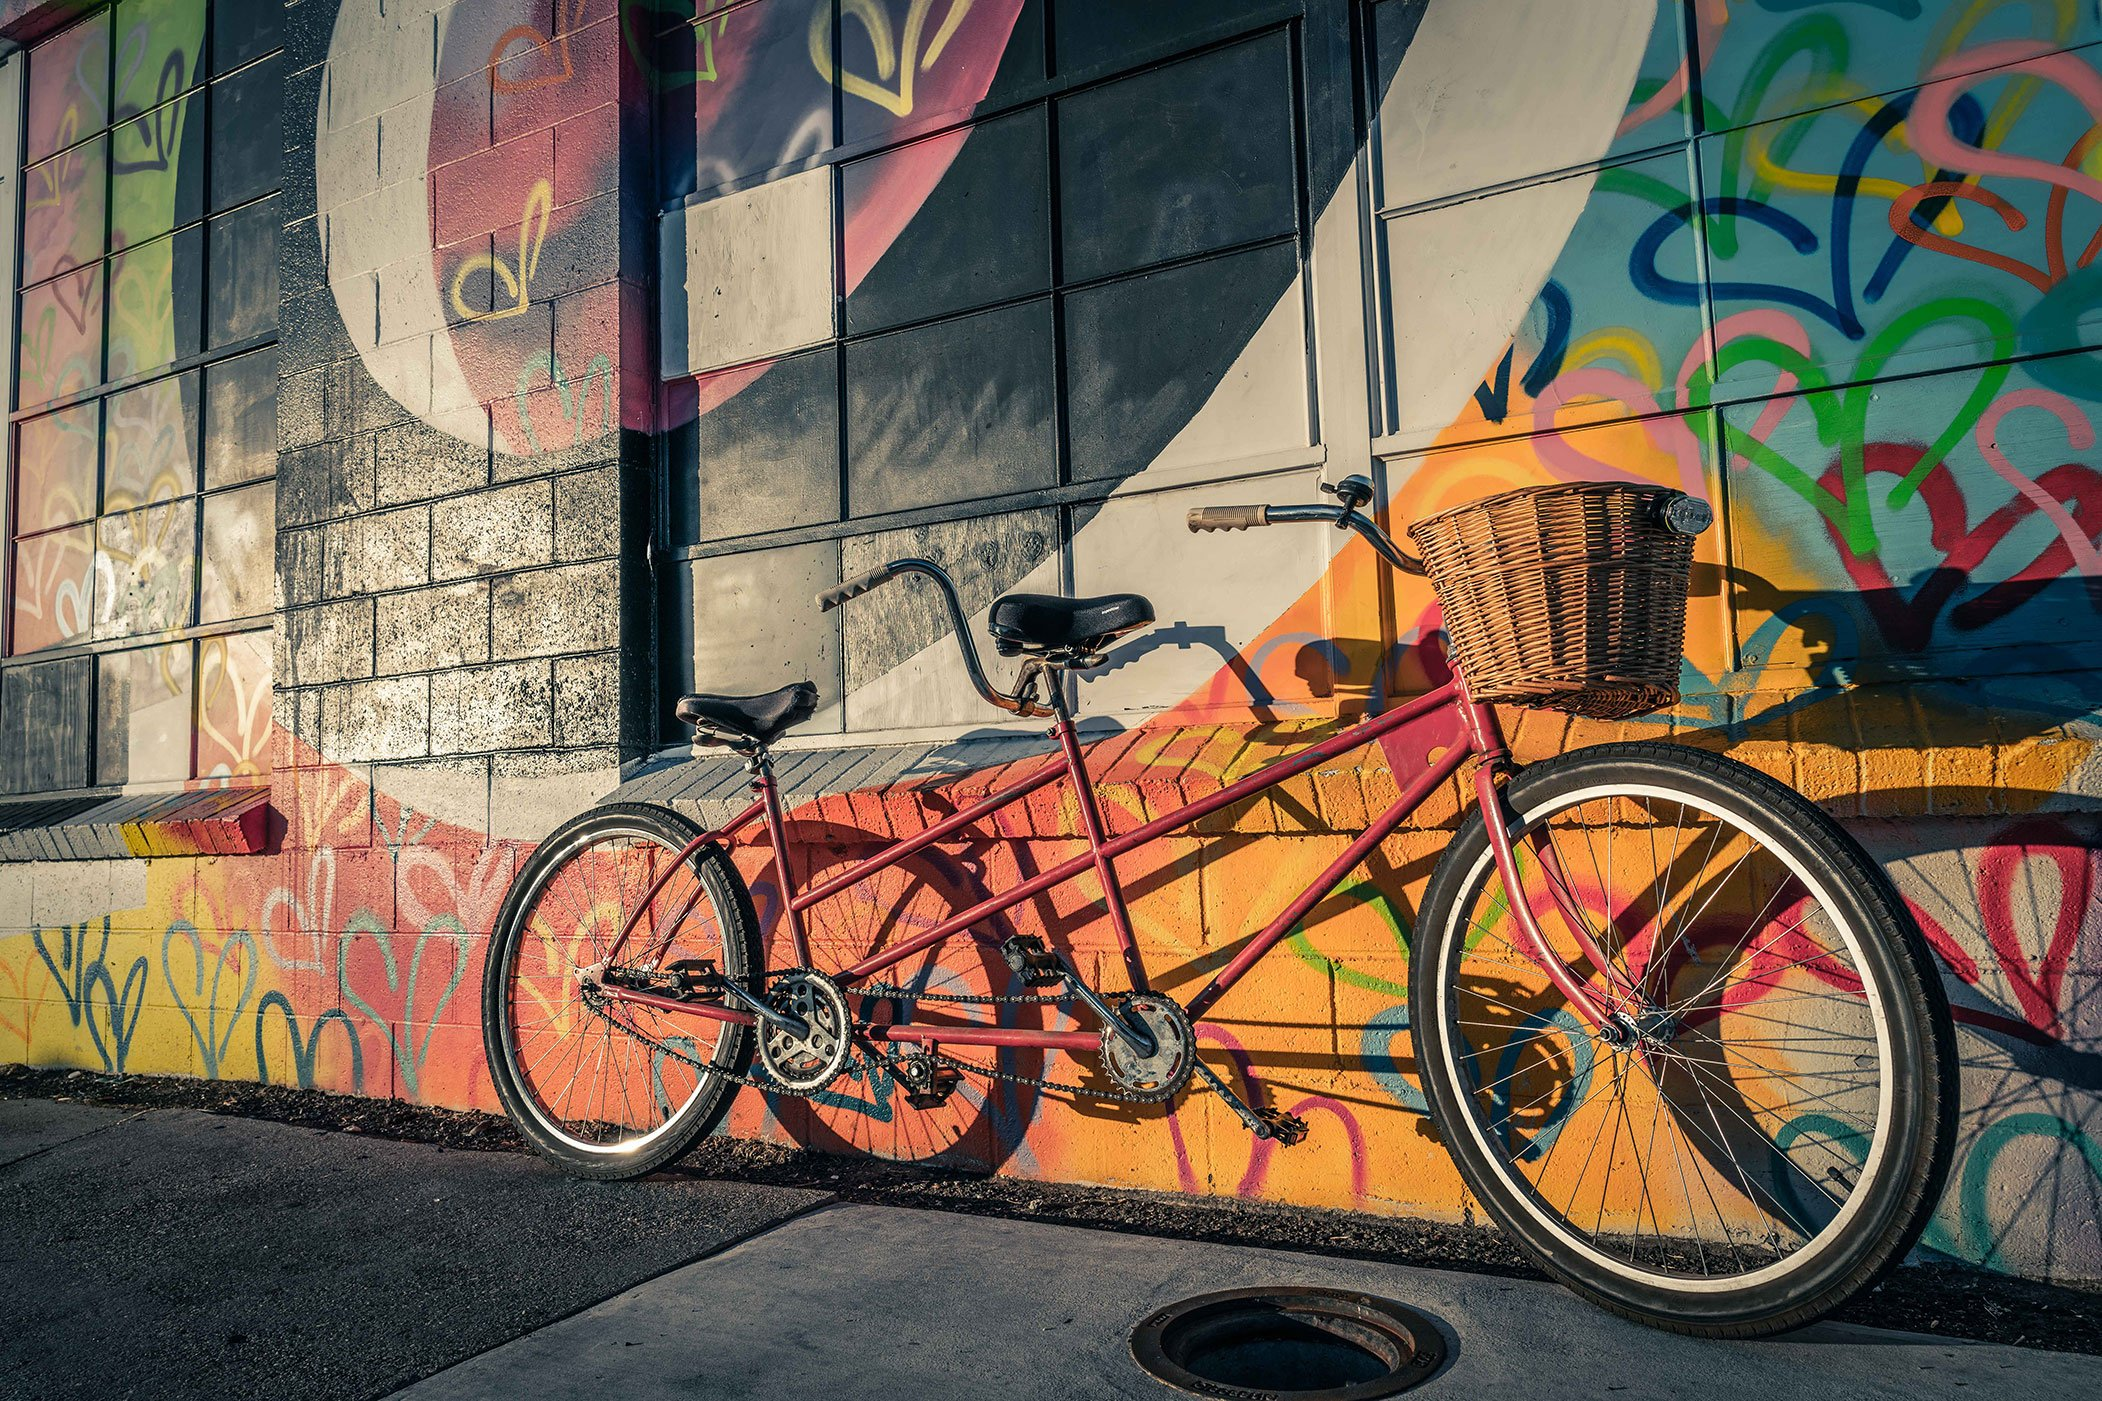 Tandem Bike - Website Design & Photography Based in Chico, CA